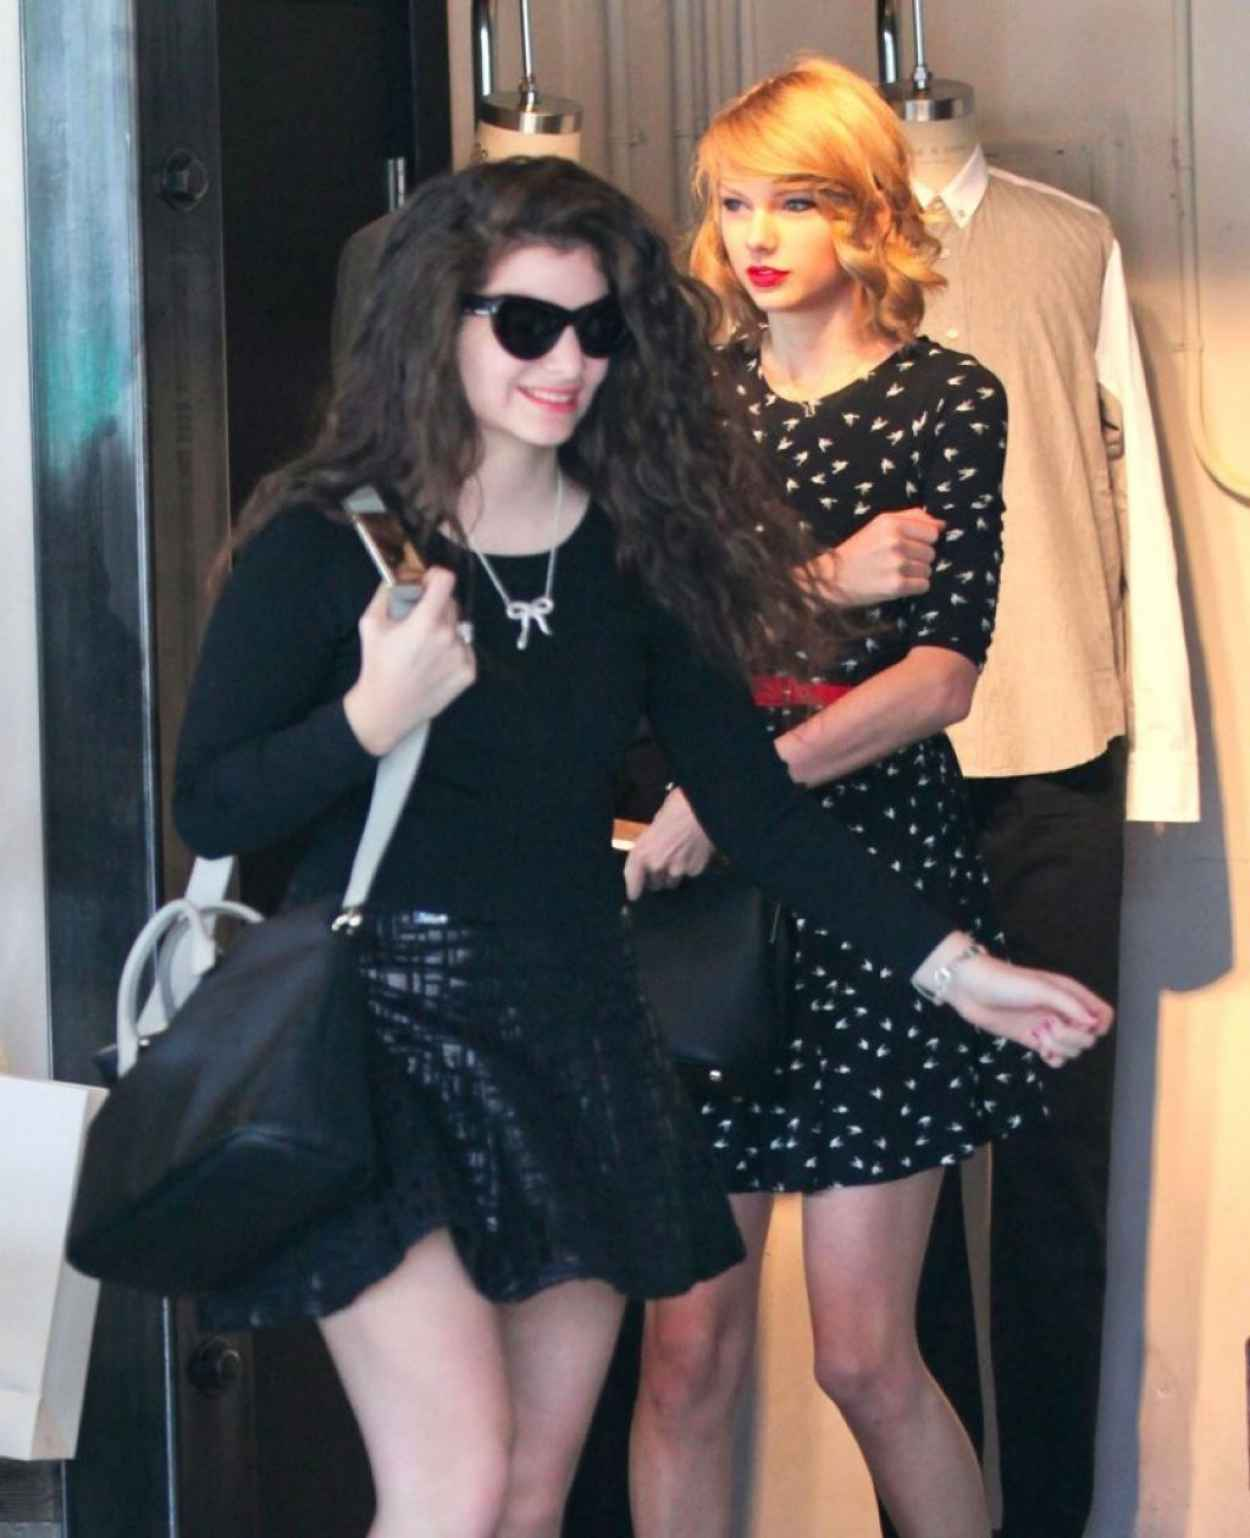 Taylor Swift & Lorde Street Style - Shopping in West Hollywood - February 2015-1